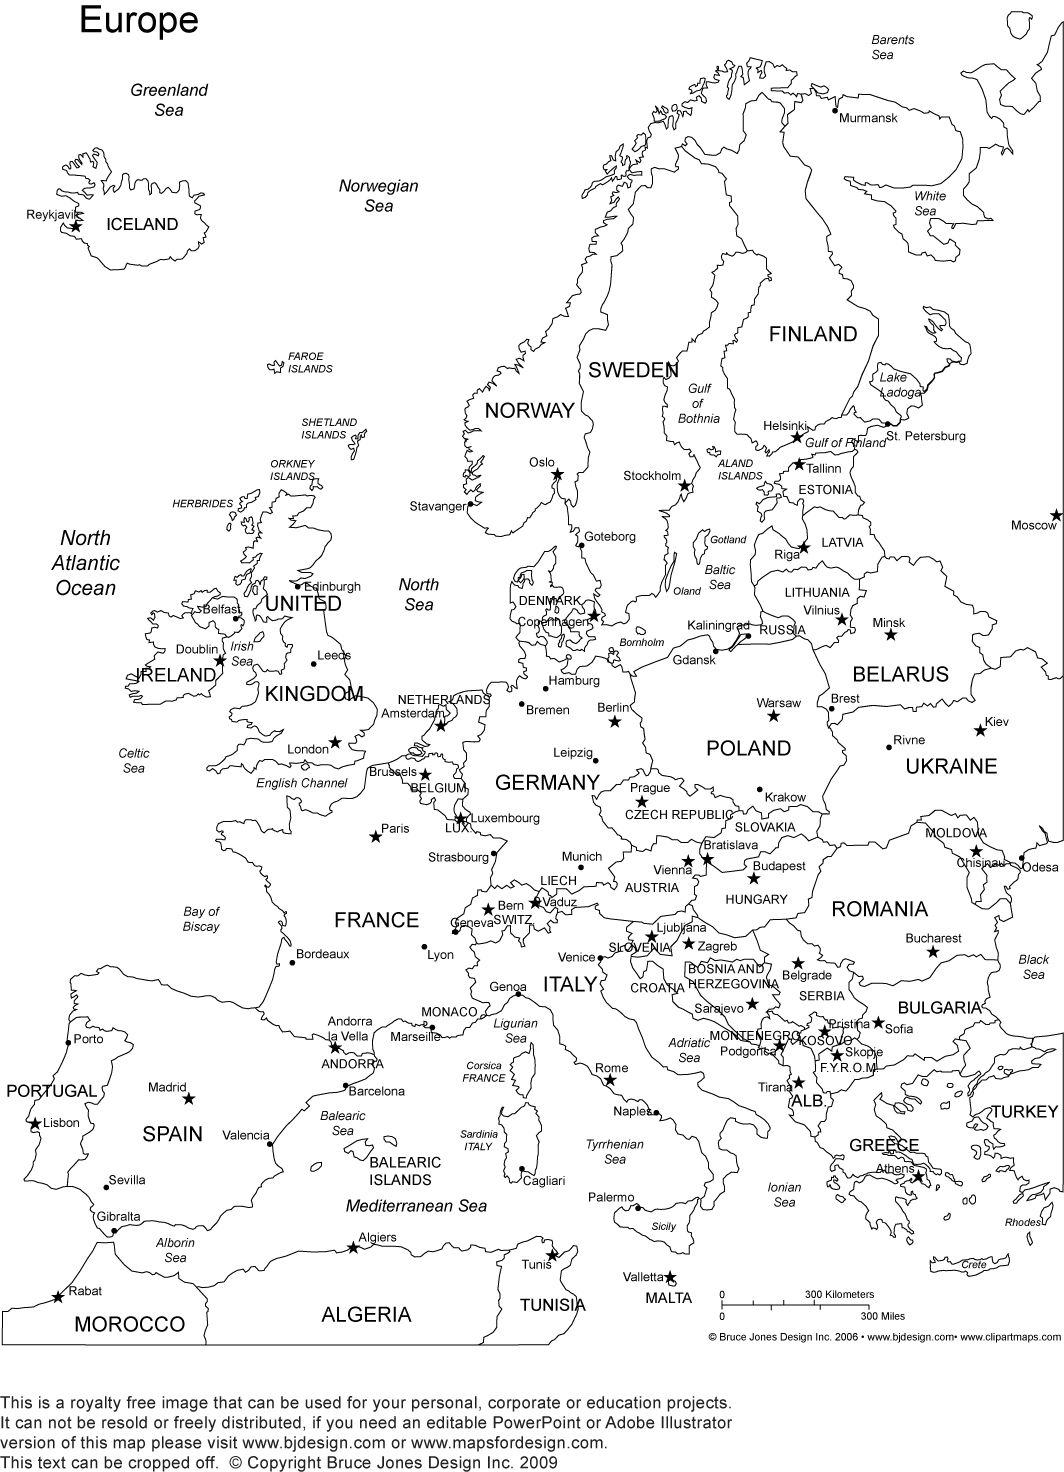 Europe Printable Blank Map Royalty Free As Well As